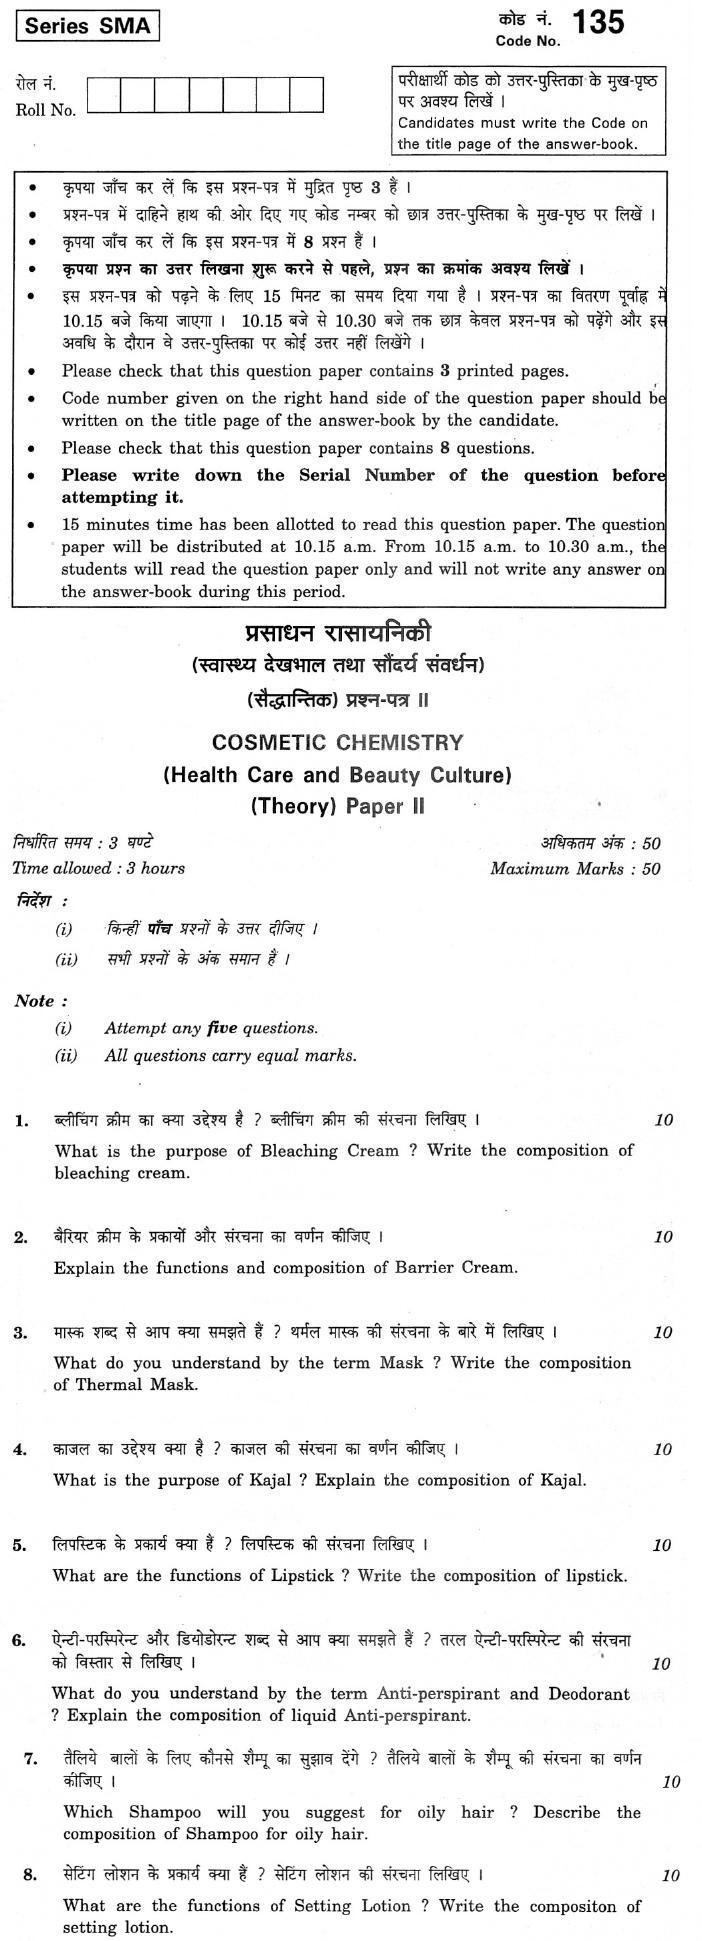 CBSE Class XII Previous Year Question Paper 2012 Cosmetic Chemistry